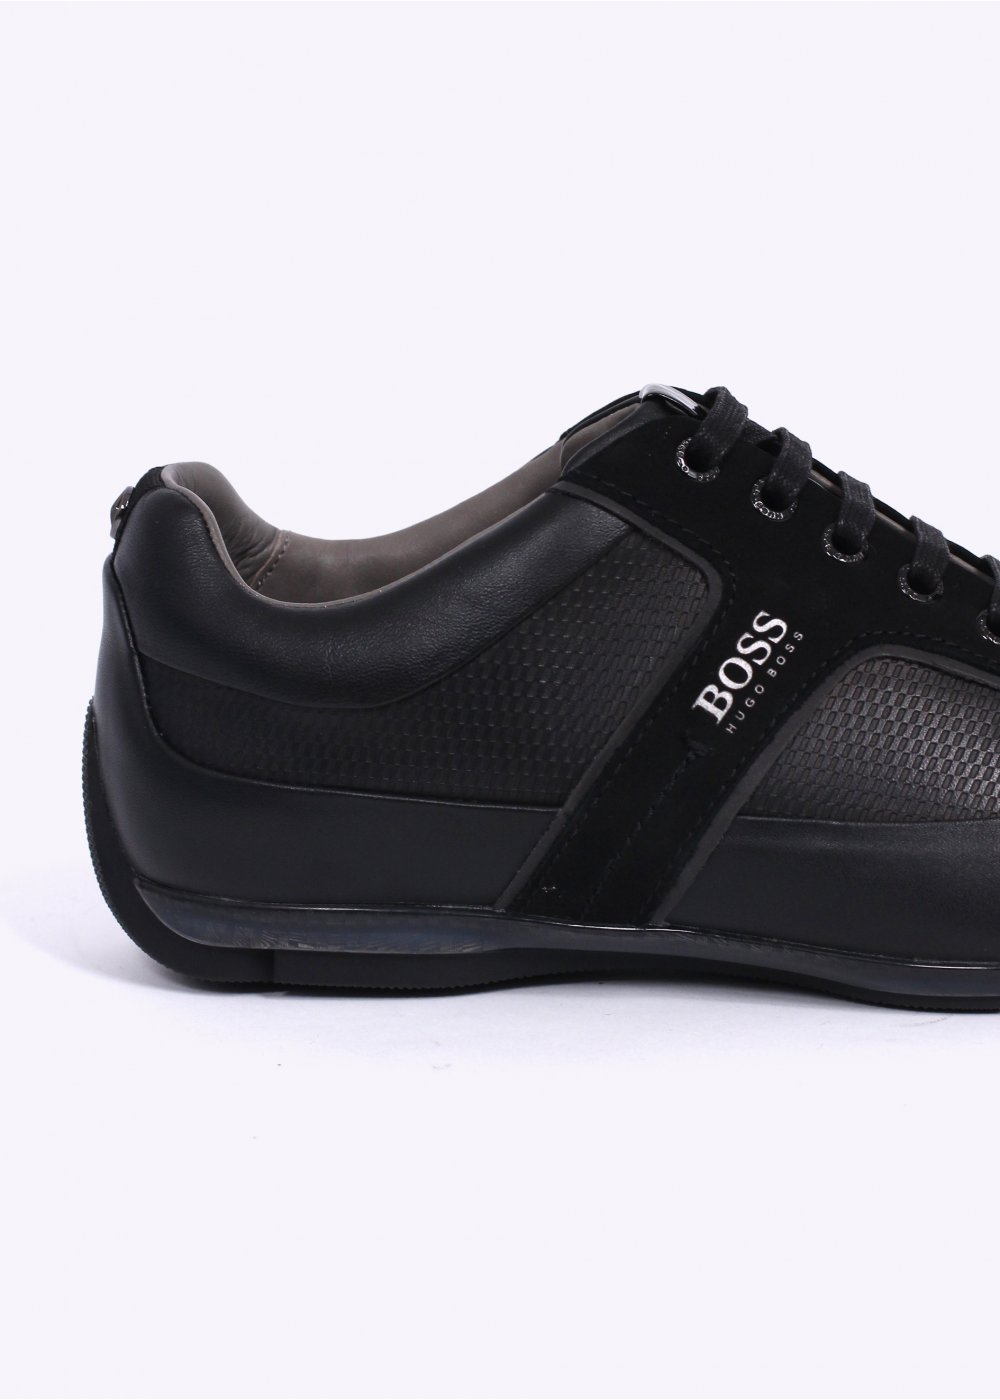 6c46625c07e Hugo Boss / Boss Black for Mercedes - Mercos Shoes - Black